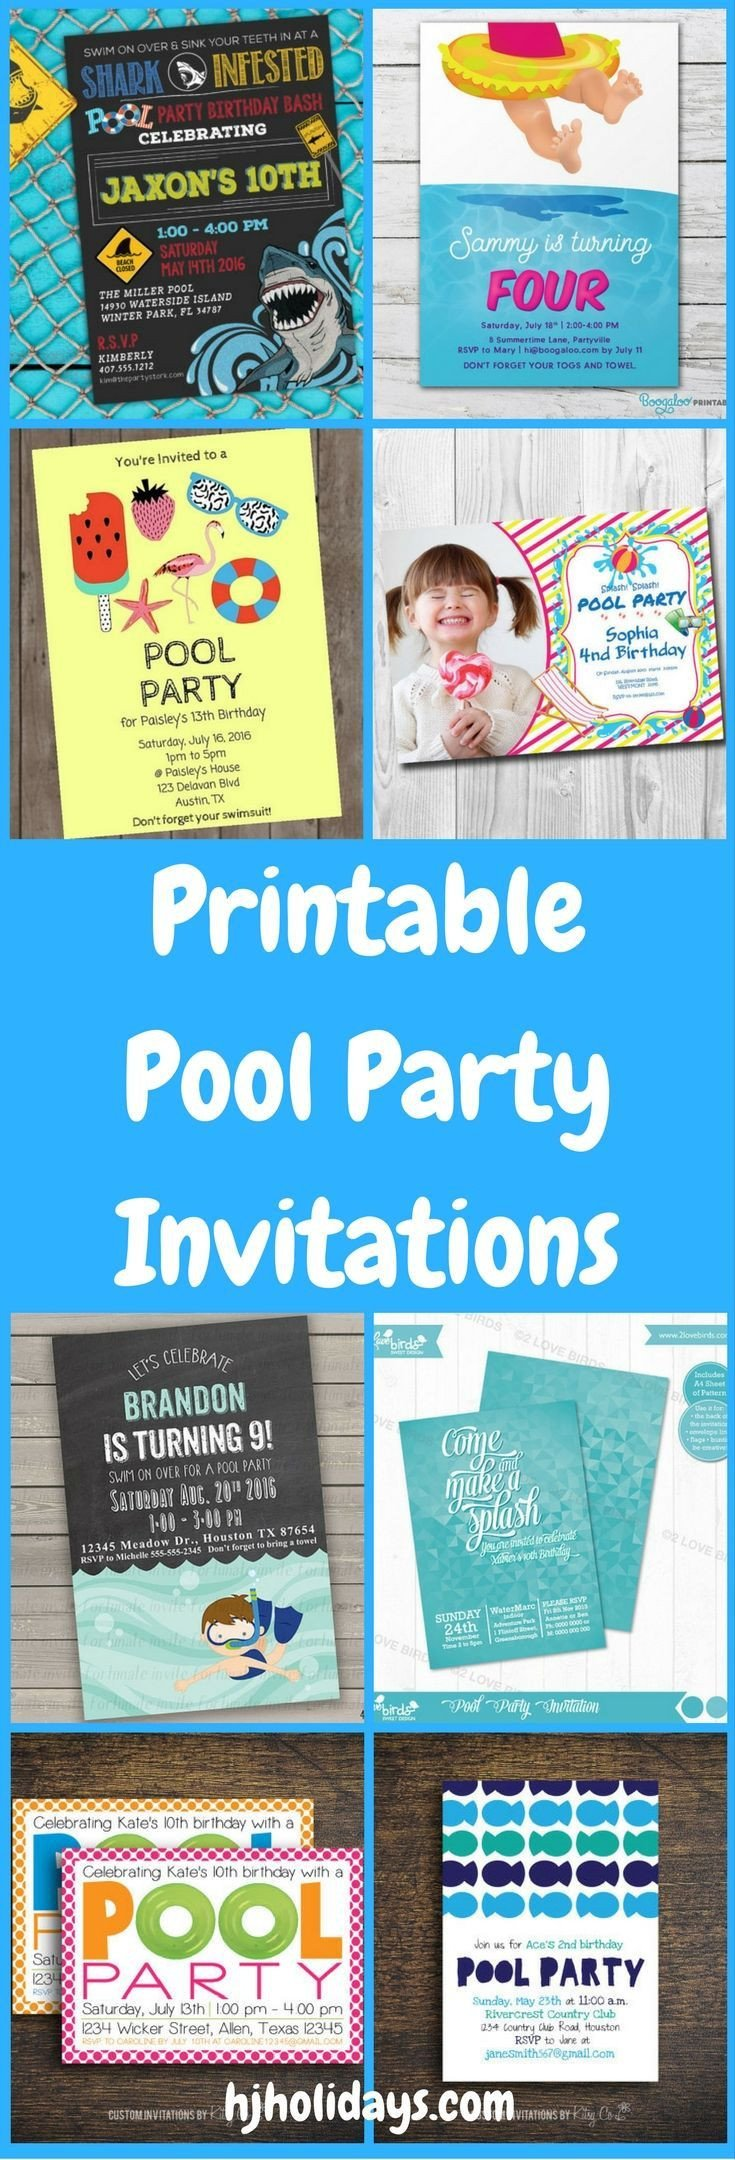 Printable Pool Party Invitations Printable Pool Party Invitations for Kids